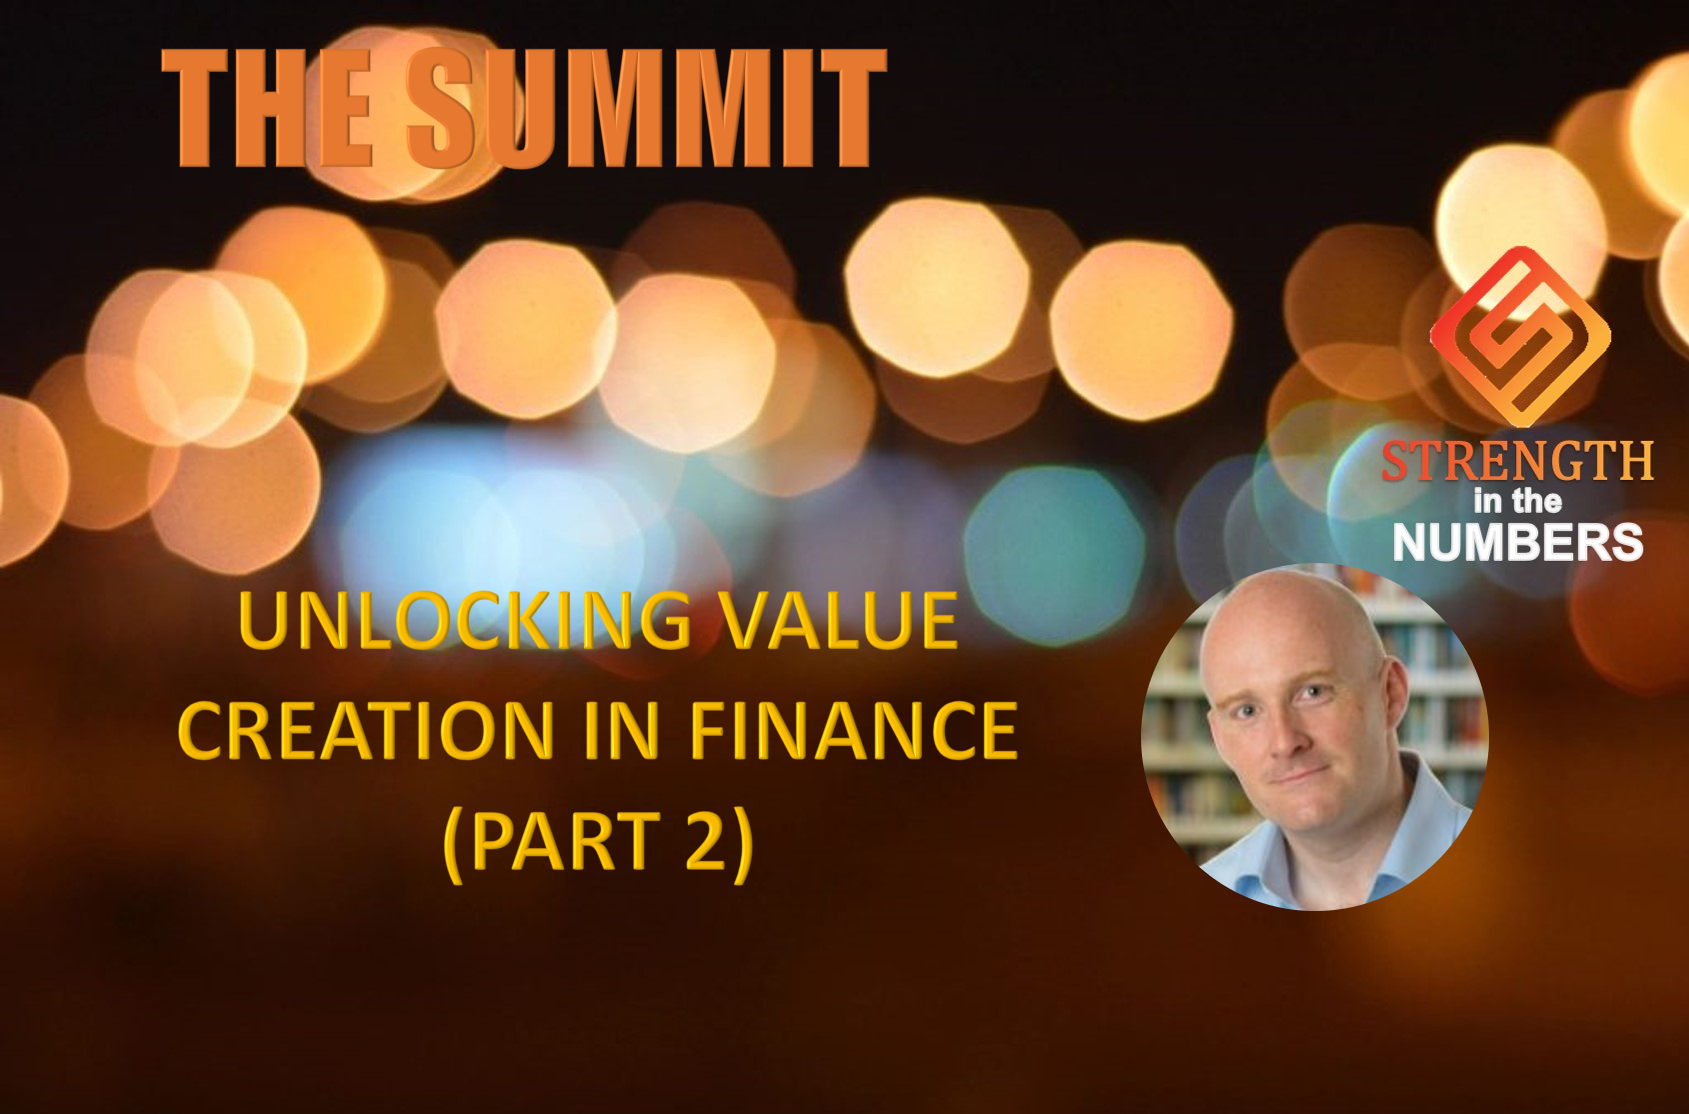 Unlocking Value Creation in Finance (Part 2)